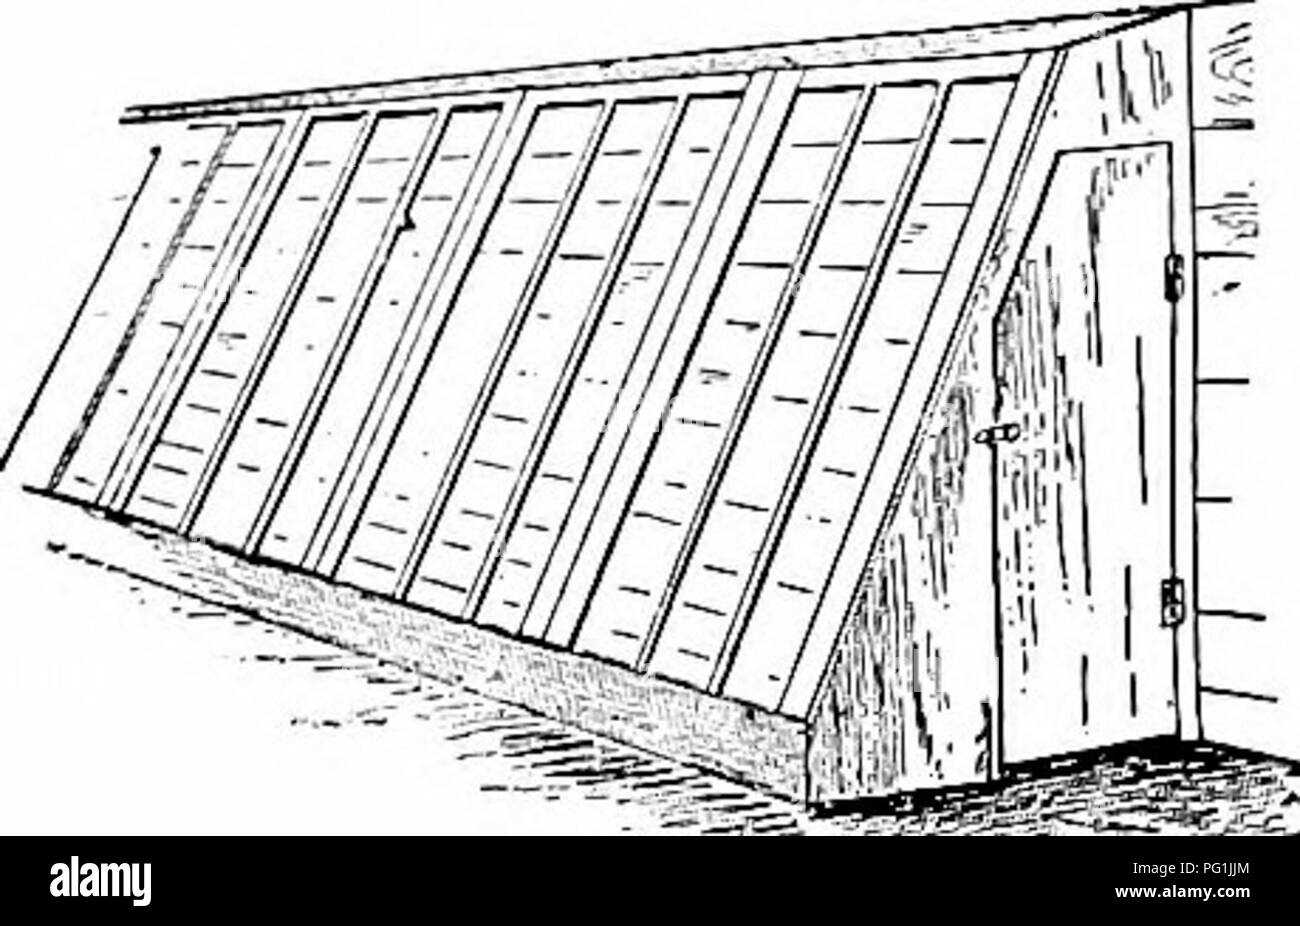 Cold Frame Growing Black and White Stock Photos & Images - Alamy